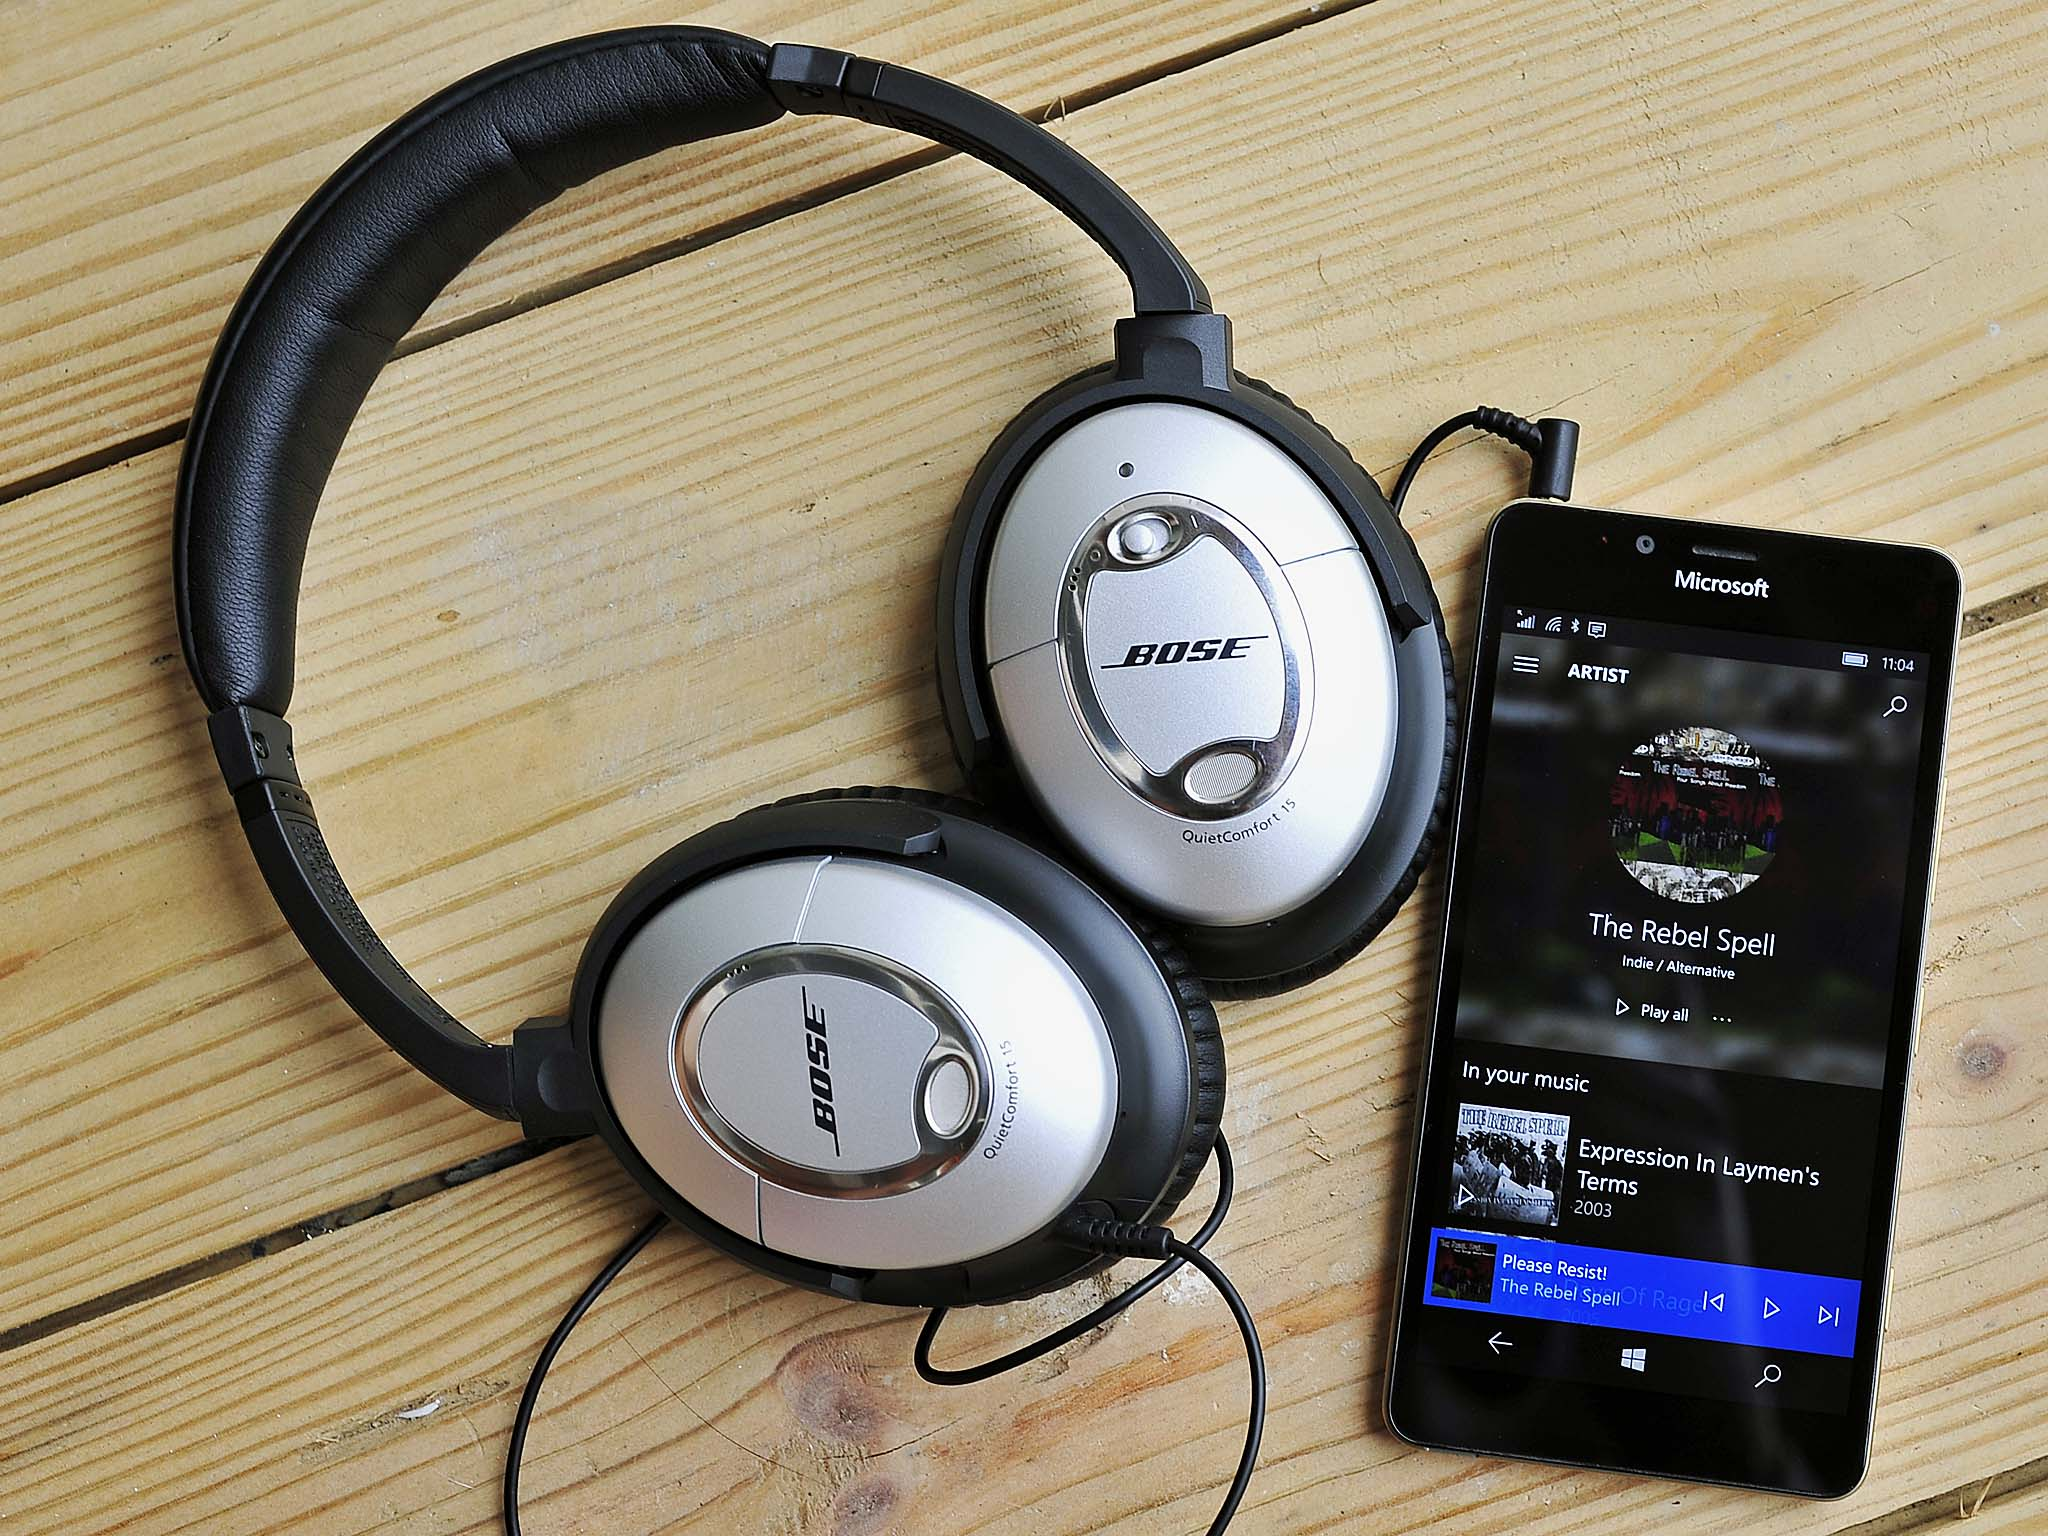 medium resolution of the difference in sound quality between bluetooth headphones and wired headphones has lessened over time however some diehard audiophiles still believe a